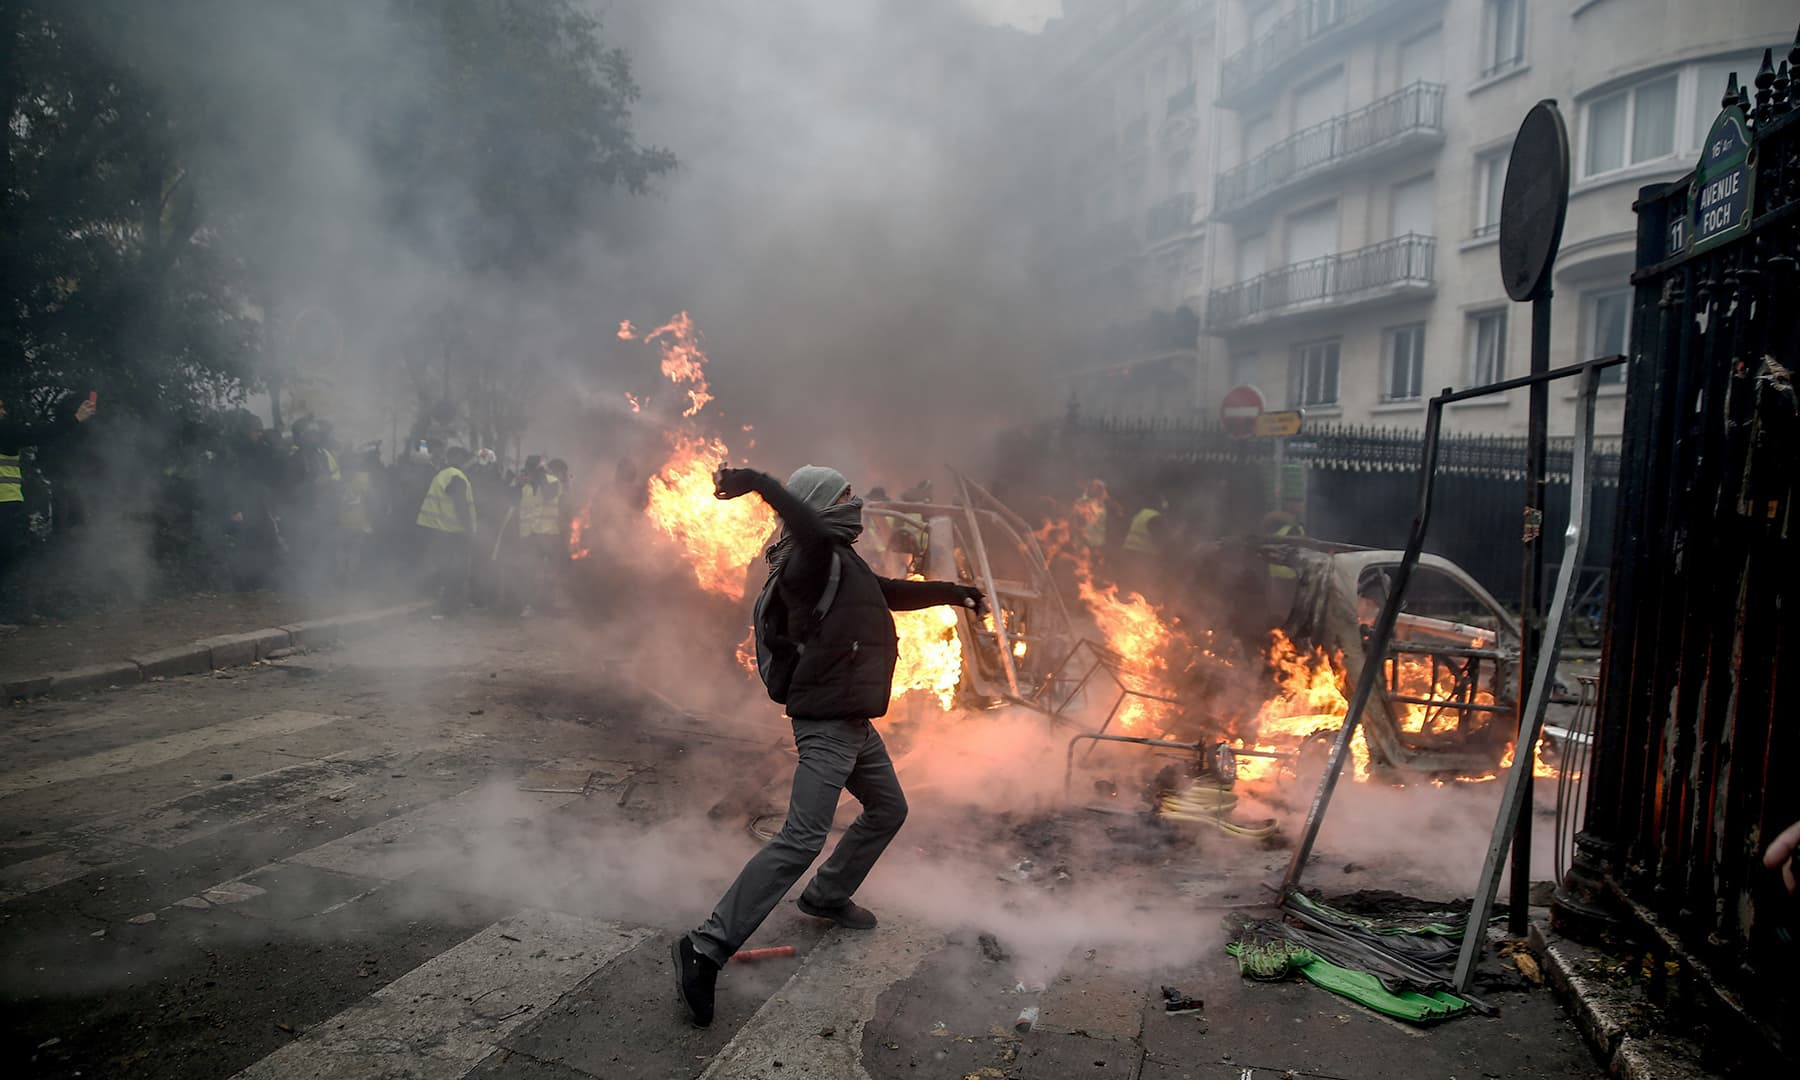 A protester throws projectile at riot police. —AFP